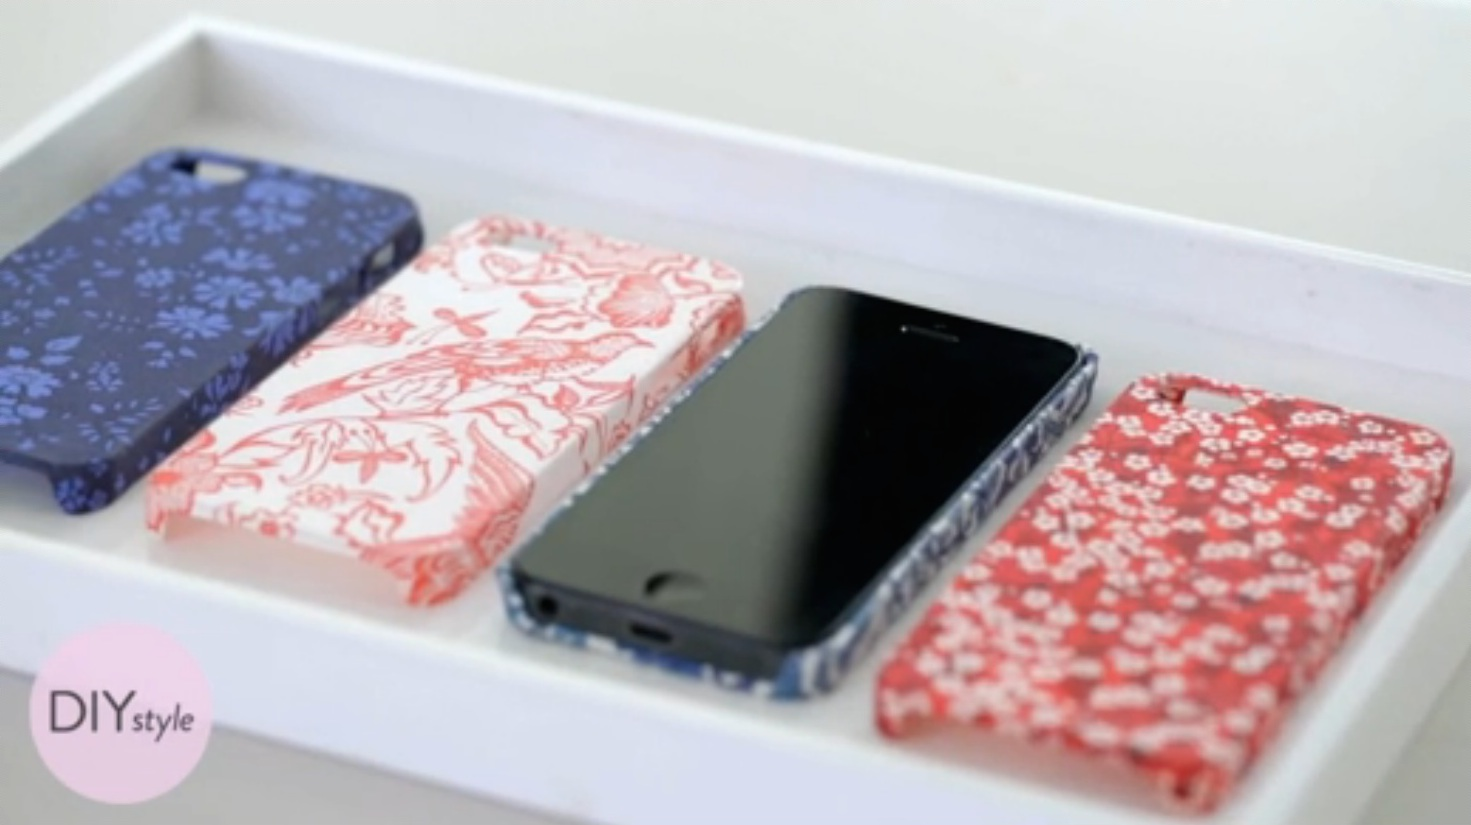 DIY fabric iPhone covers: If you ever wanted to make them, you're in luck